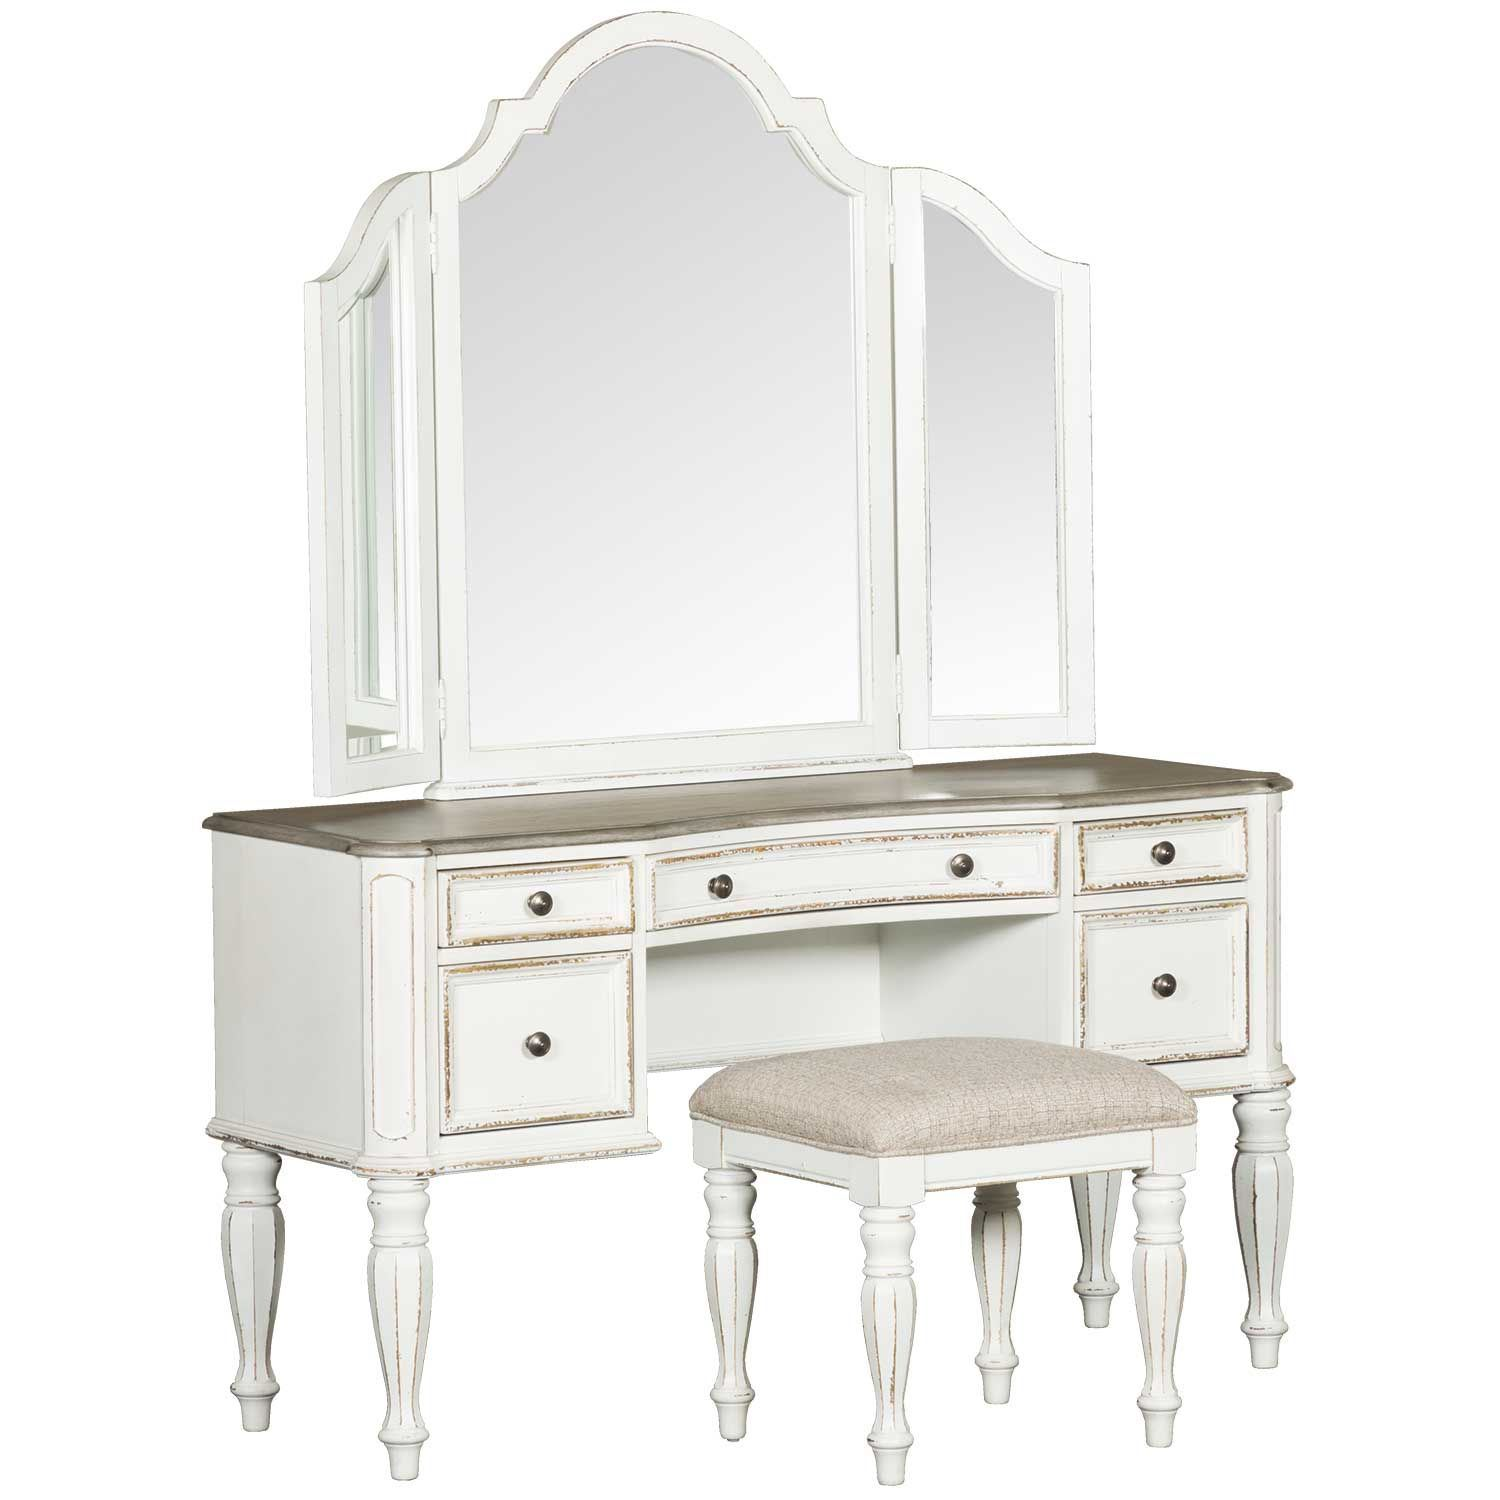 Picture of Magnolia Manor Complete Vanity